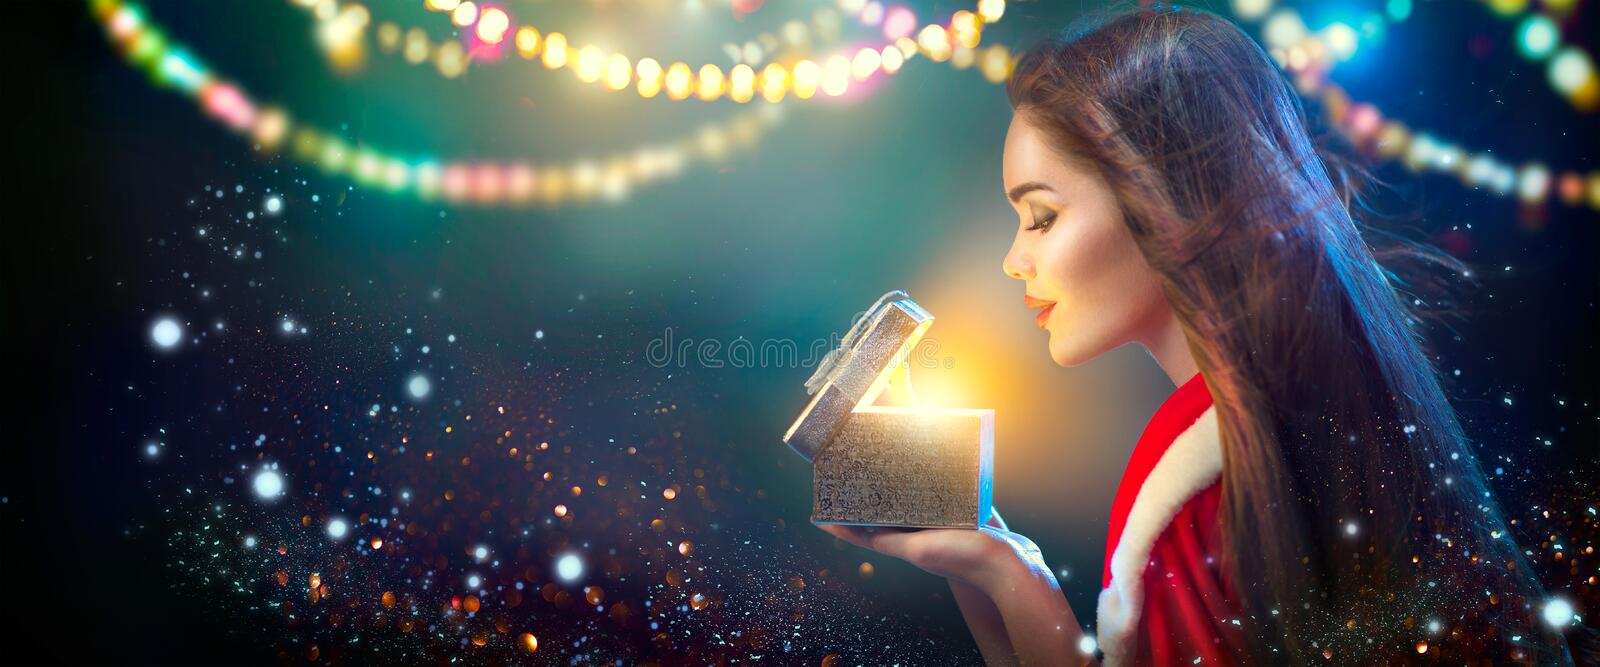 Christmas scene. Beauty brunette young woman in party costume opening gift box. Over holiday blurred background royalty free stock photo